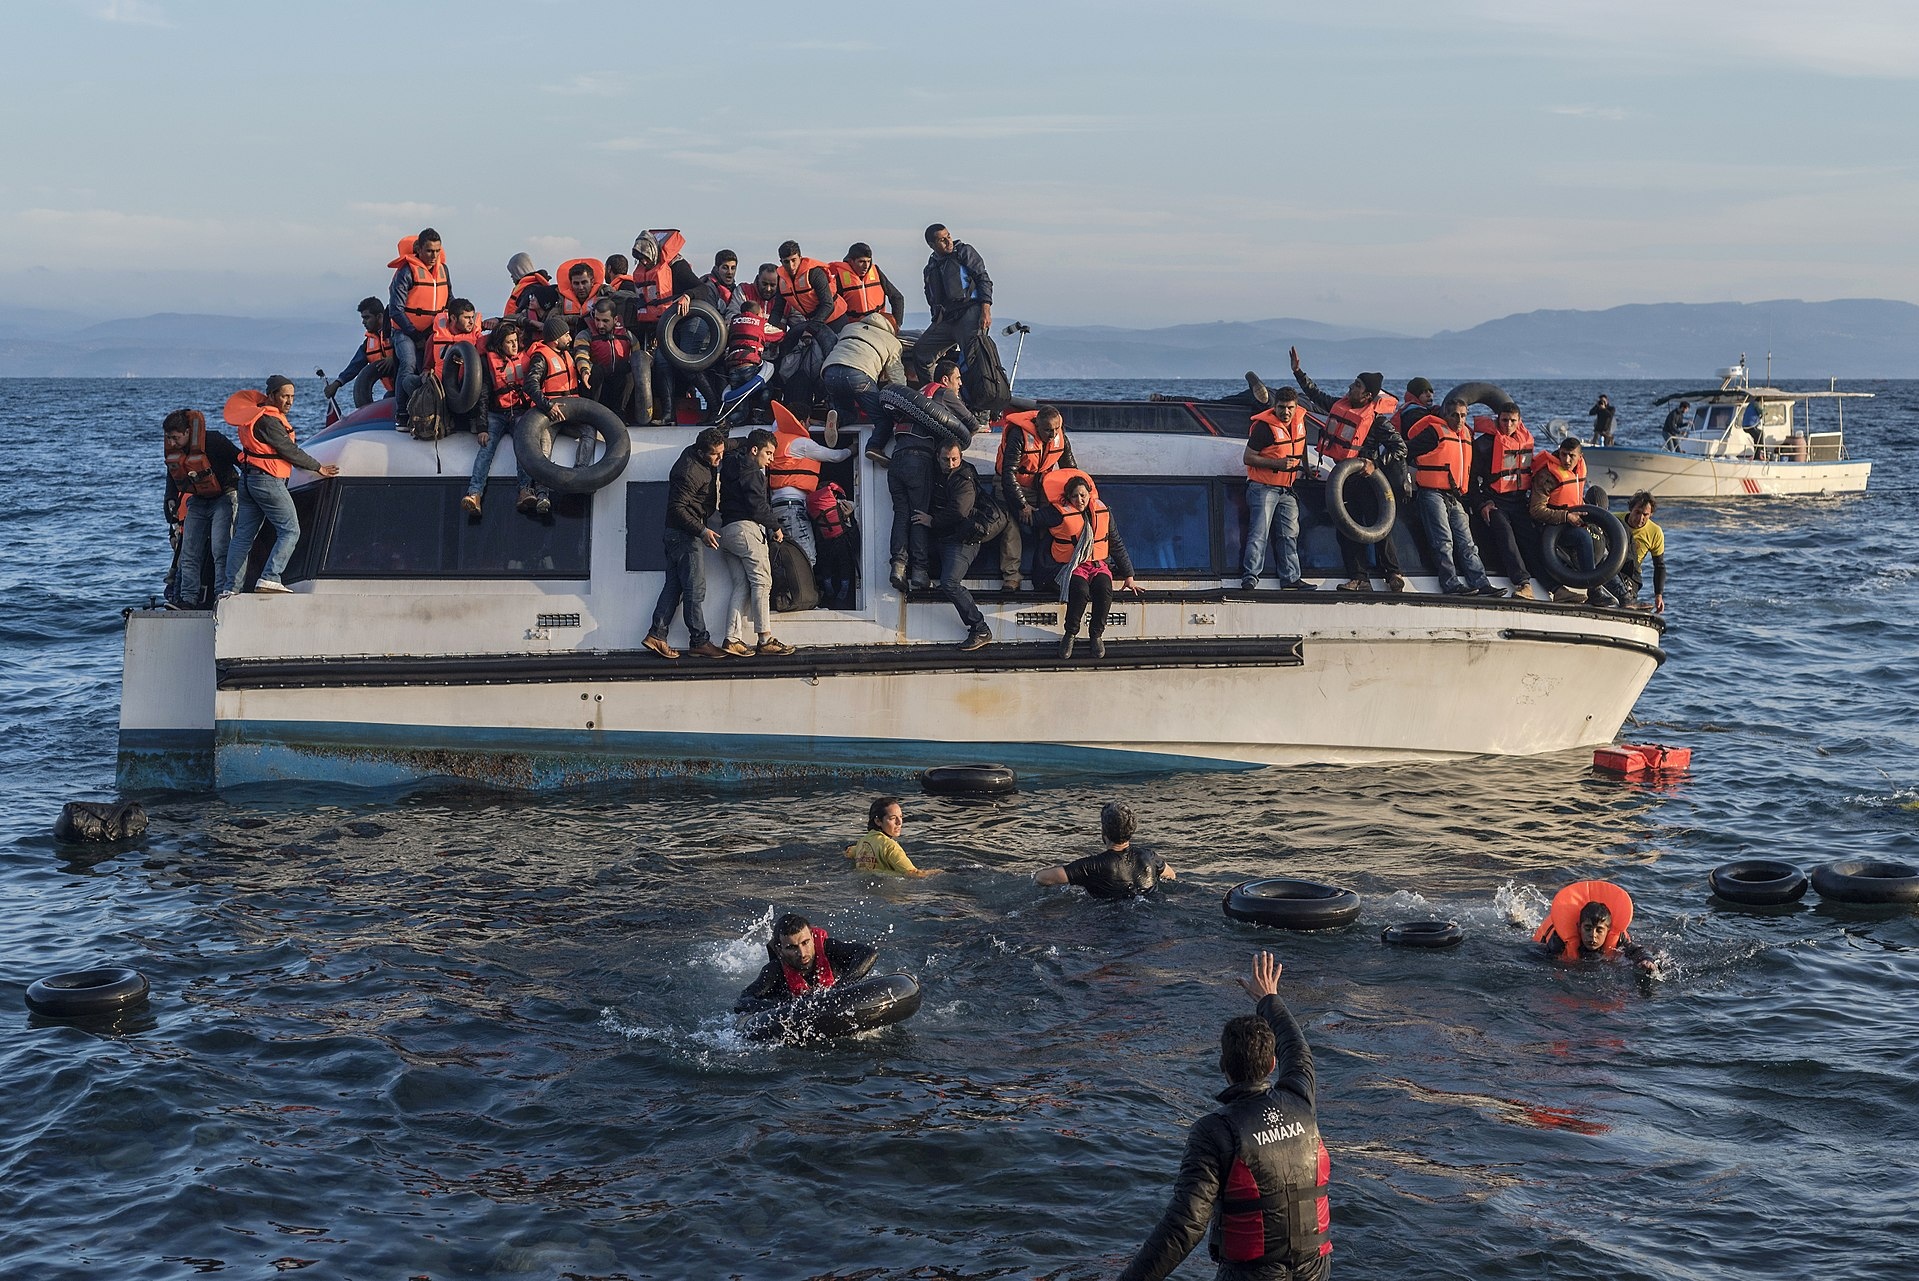 1920px-20151030_Syrians_and_Iraq_refugees_arrive_at_Skala_Sykamias_Lesvos_Greece_2